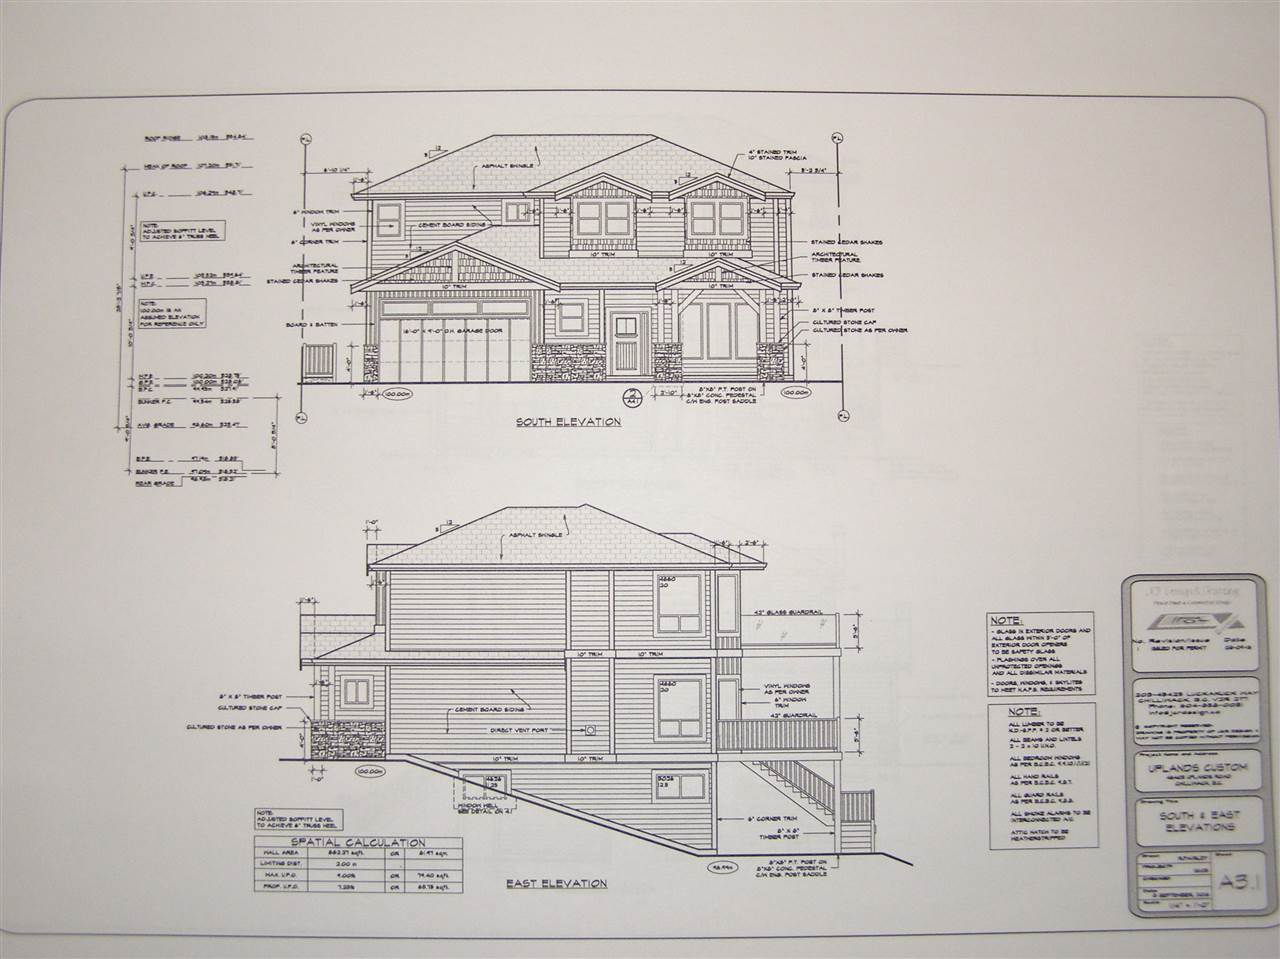 Executive 5 bedroom home under construction on Uplands Road with great mountain and valley views. This luxury home comes fully equipped with all the modern comforts that will please the most discriminating buyer. The dream kitchen will have quartz counter tops, double wall over, gas cook top, 2 dishwashers, commercial sized fridge so let the entertaining begin. 20' ceiling in the great room and the bunker will be a 16 x 20 media room plus a huge rec room sure to keep the teenagers occupied. There are 5 bathrooms in the home with 2 ensuites with heated floors and the most deluxe in the master of course which also has a sitting area. There are 3 decks at the back of the house, one of them off the master suite to enjoy the views.